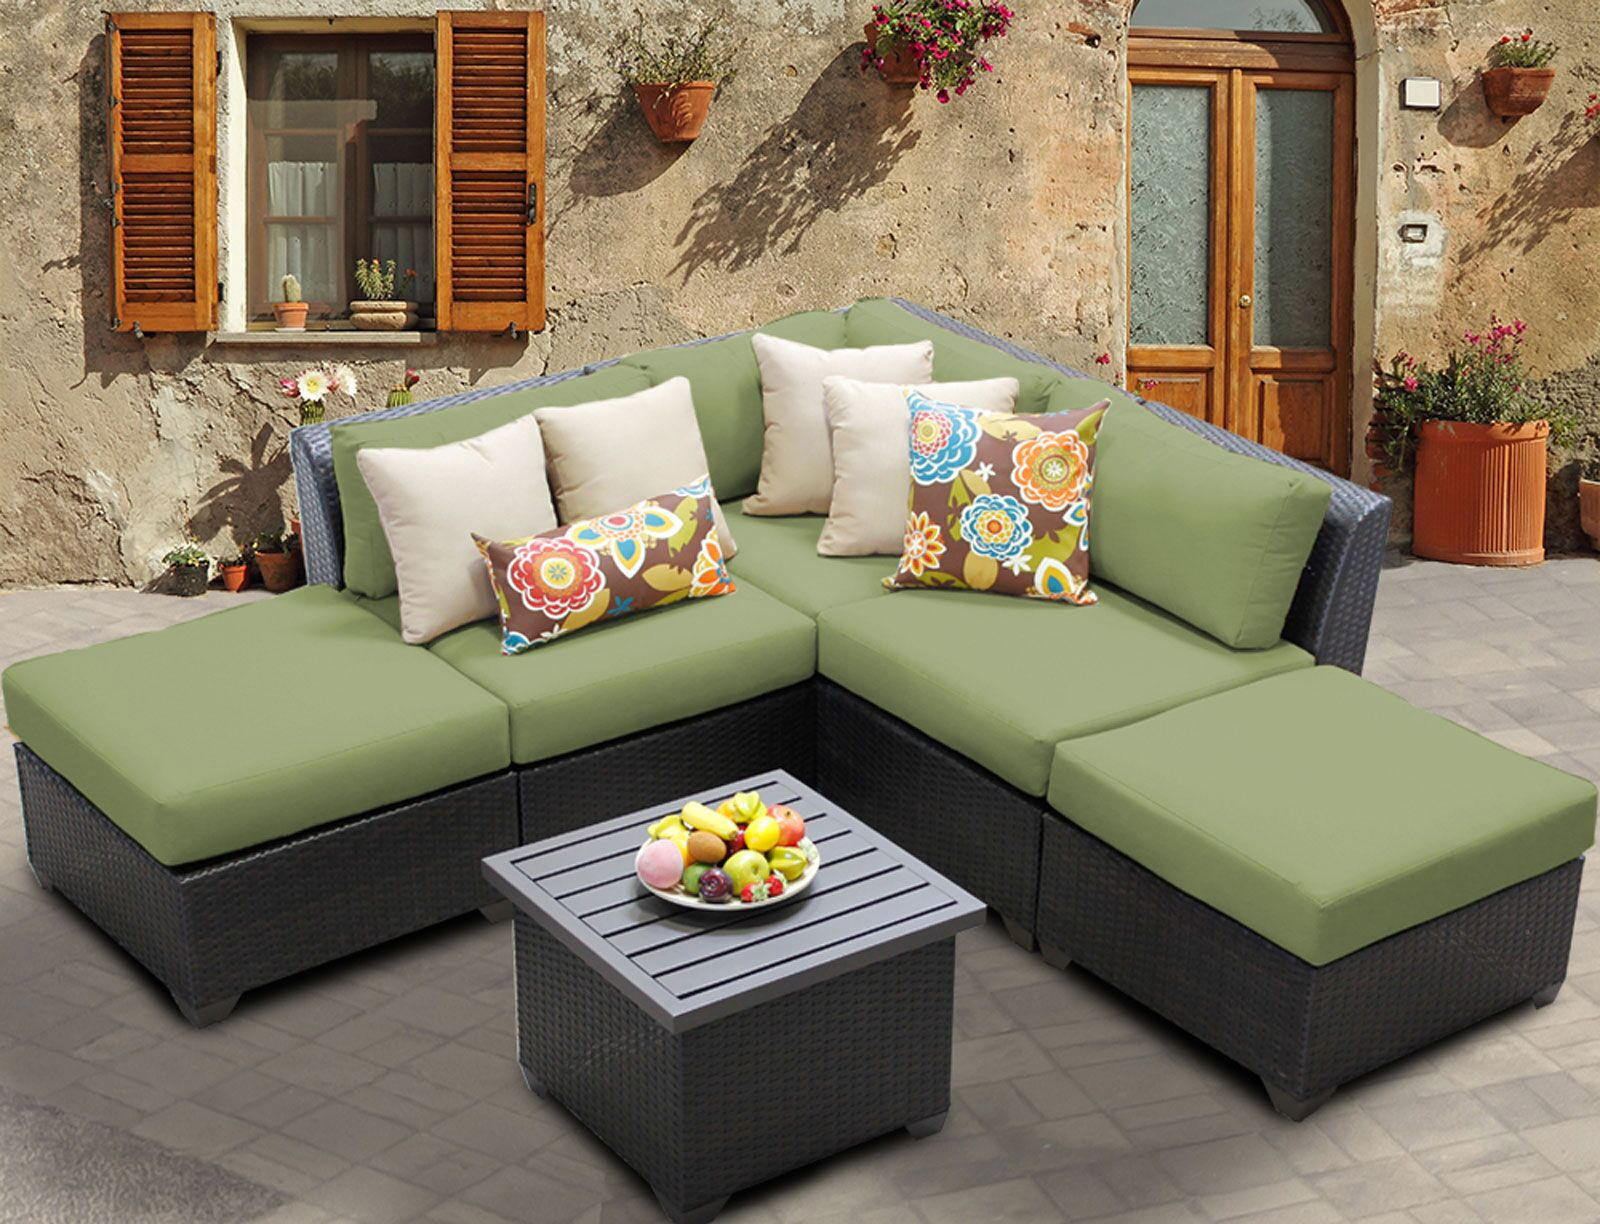 Barbados 6 Piece Rattan Sectional Set with Cushions Color: Cilantro